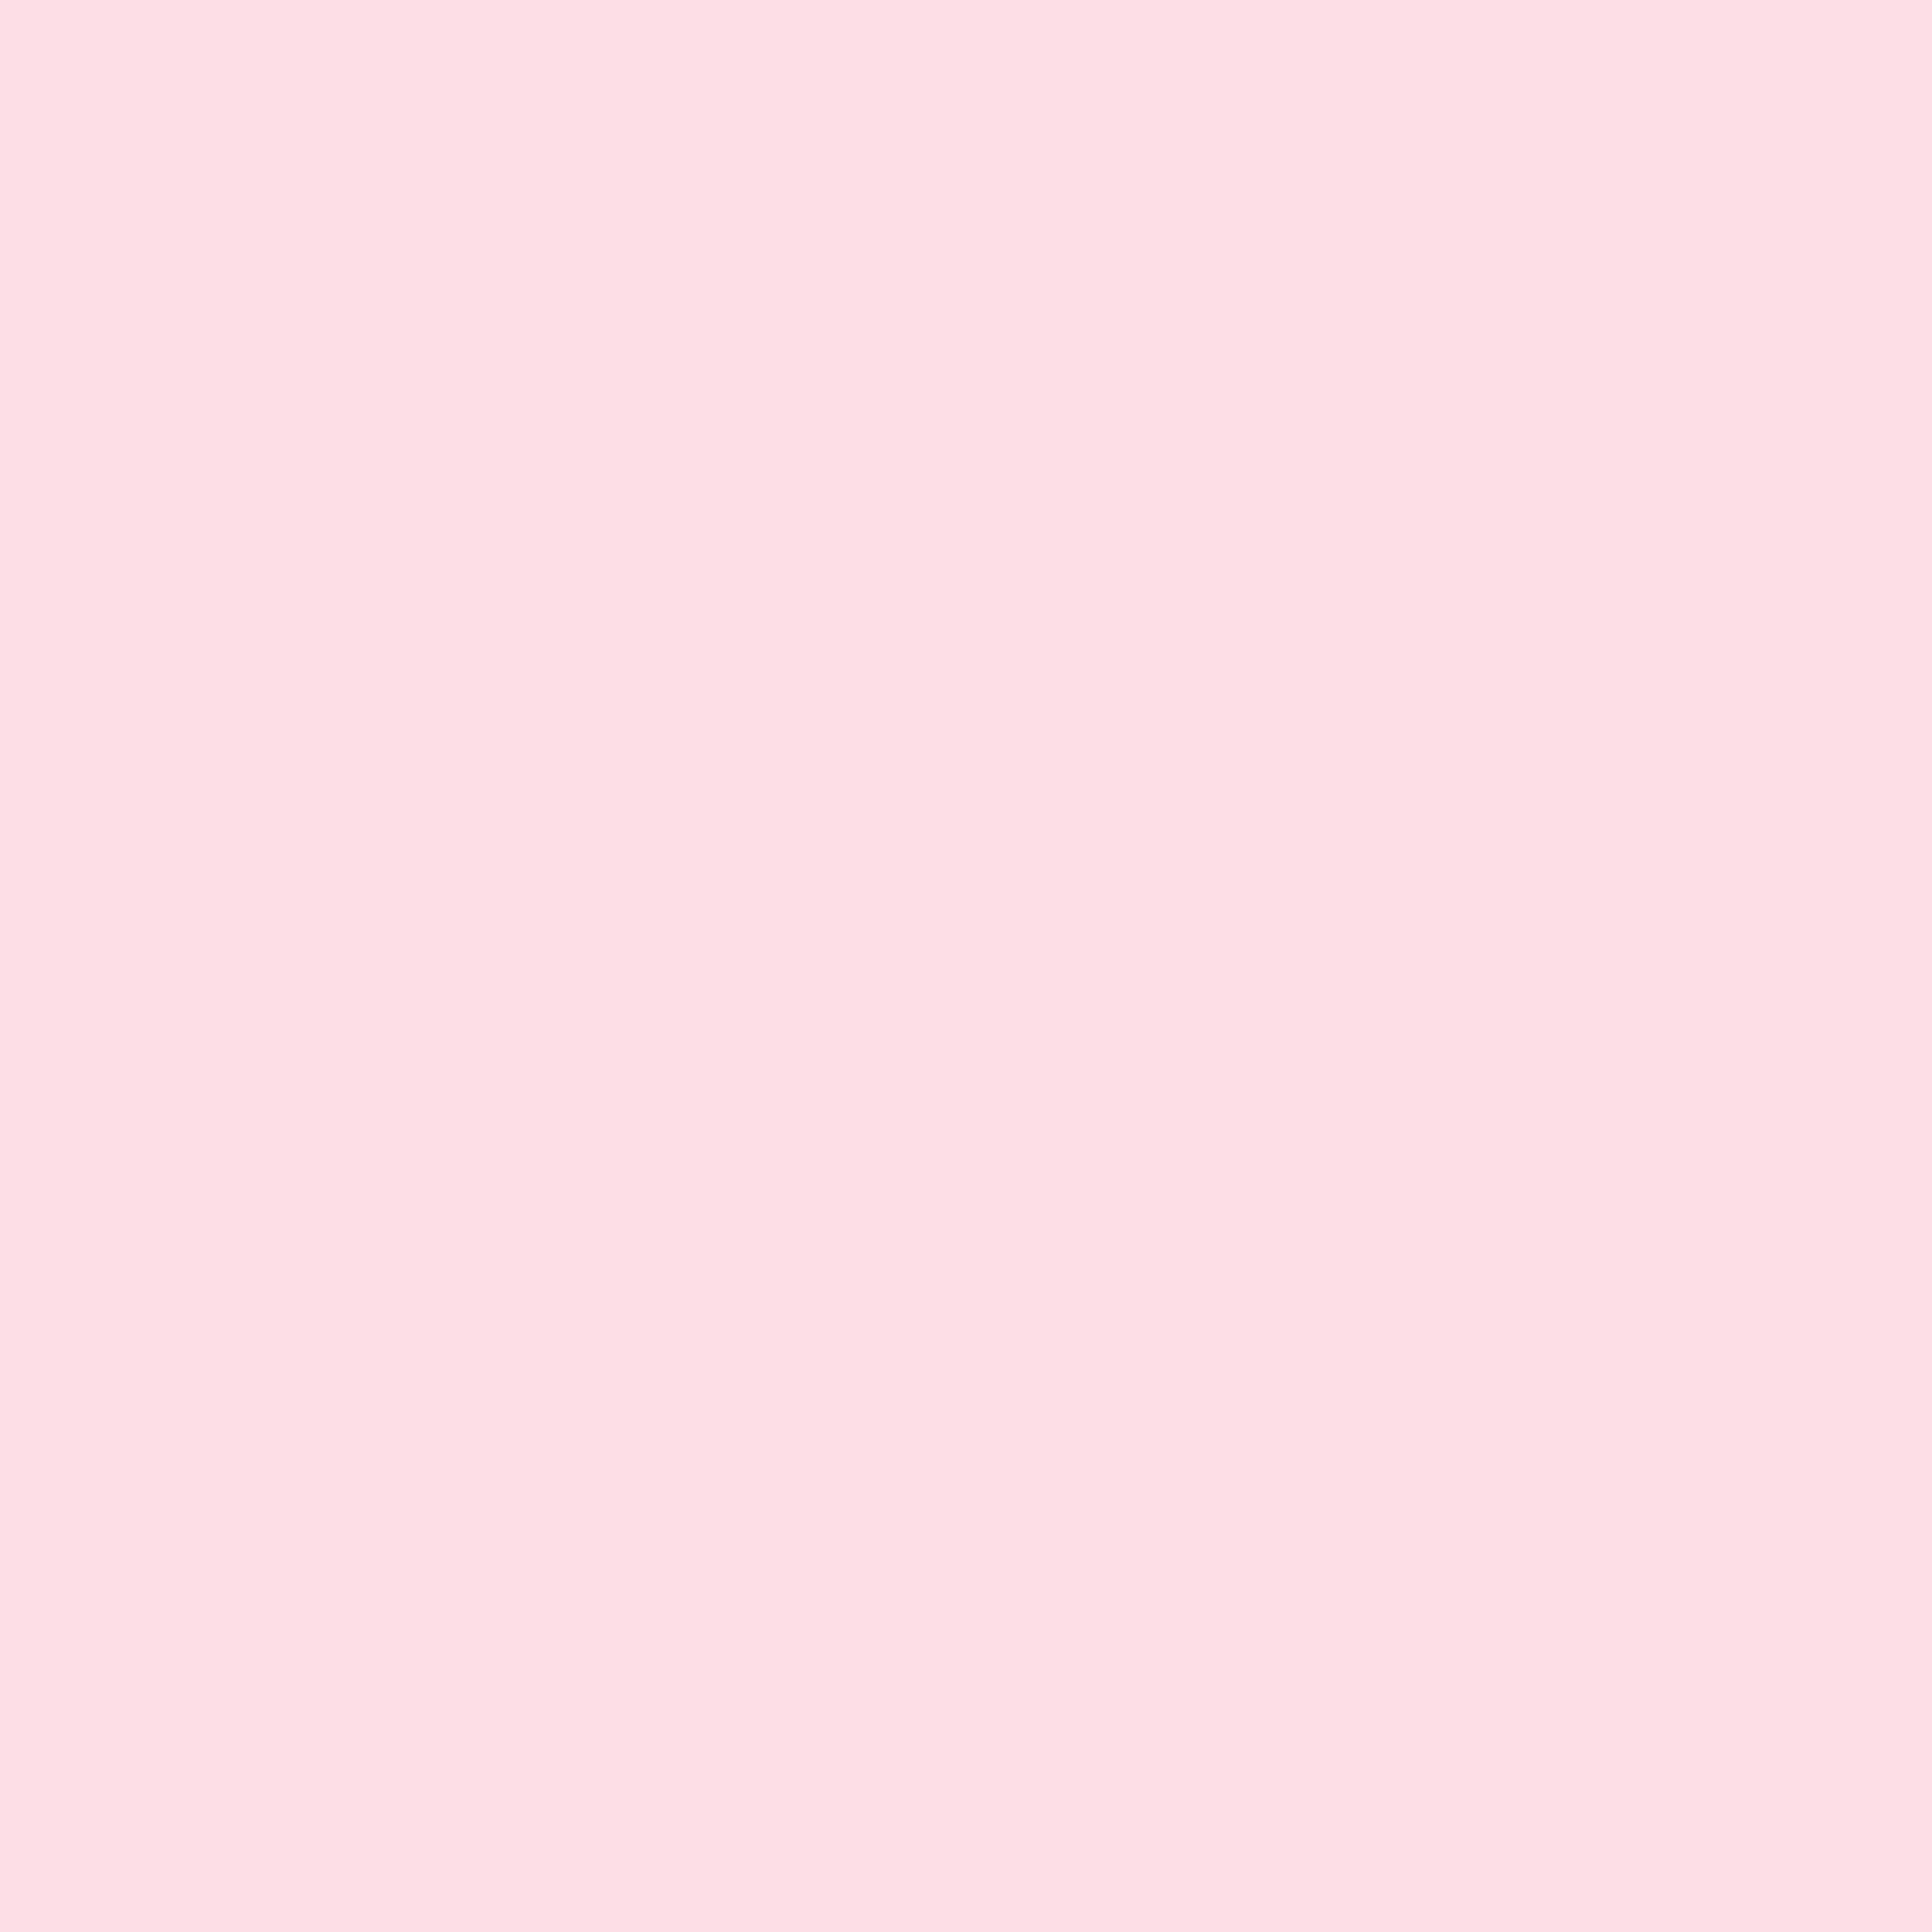 3600x3600 Piggy Pink Solid Color Background